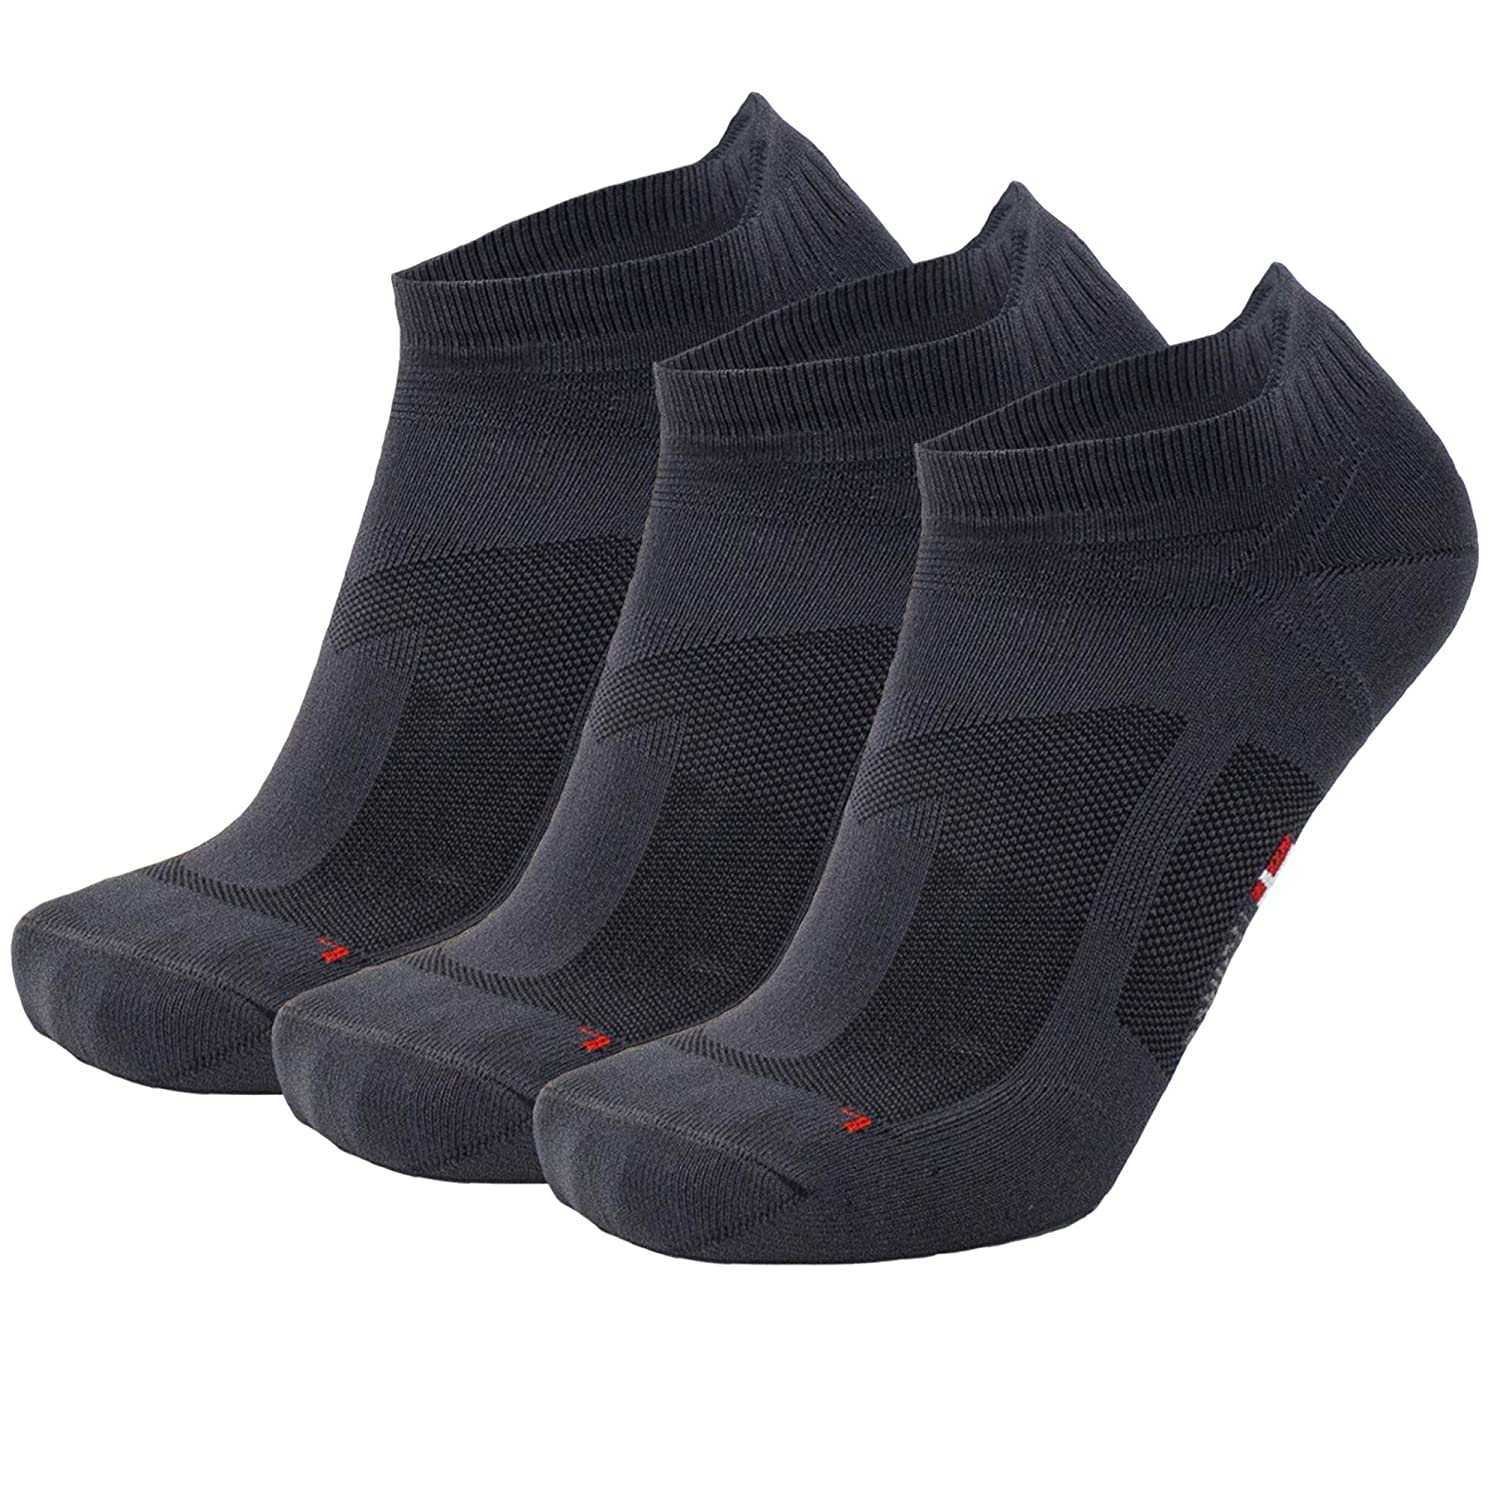 Sneakers Anti-Blister Athletic Socks for Sports for Men /& Women 3 Pack Low-Cut Running Socks